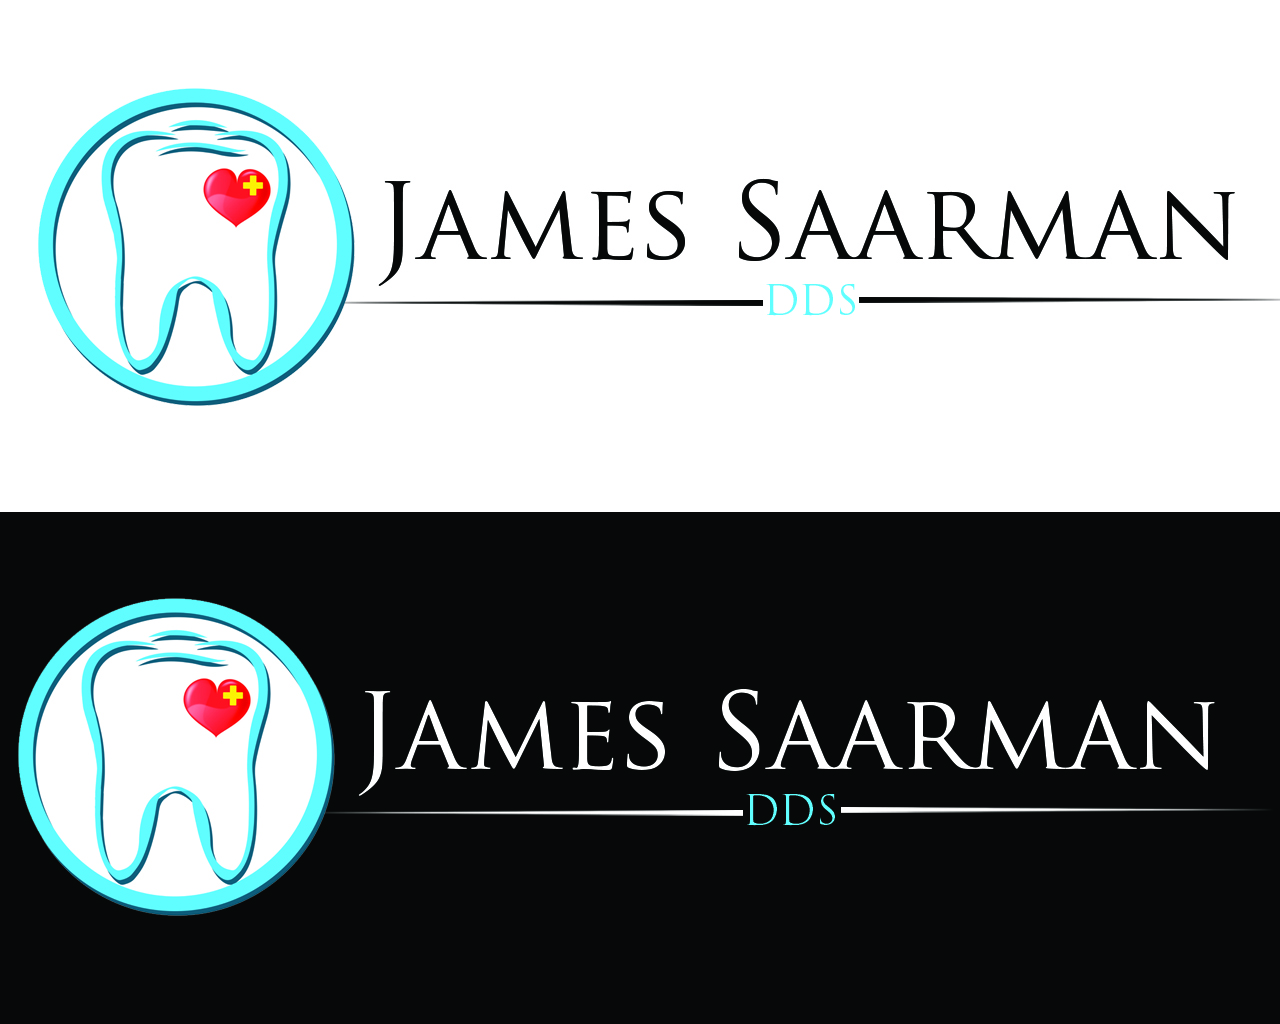 Logo Design by Aljohn Mana-ay - Entry No. 89 in the Logo Design Contest Unique Logo Design Wanted for James Saarman DDS.